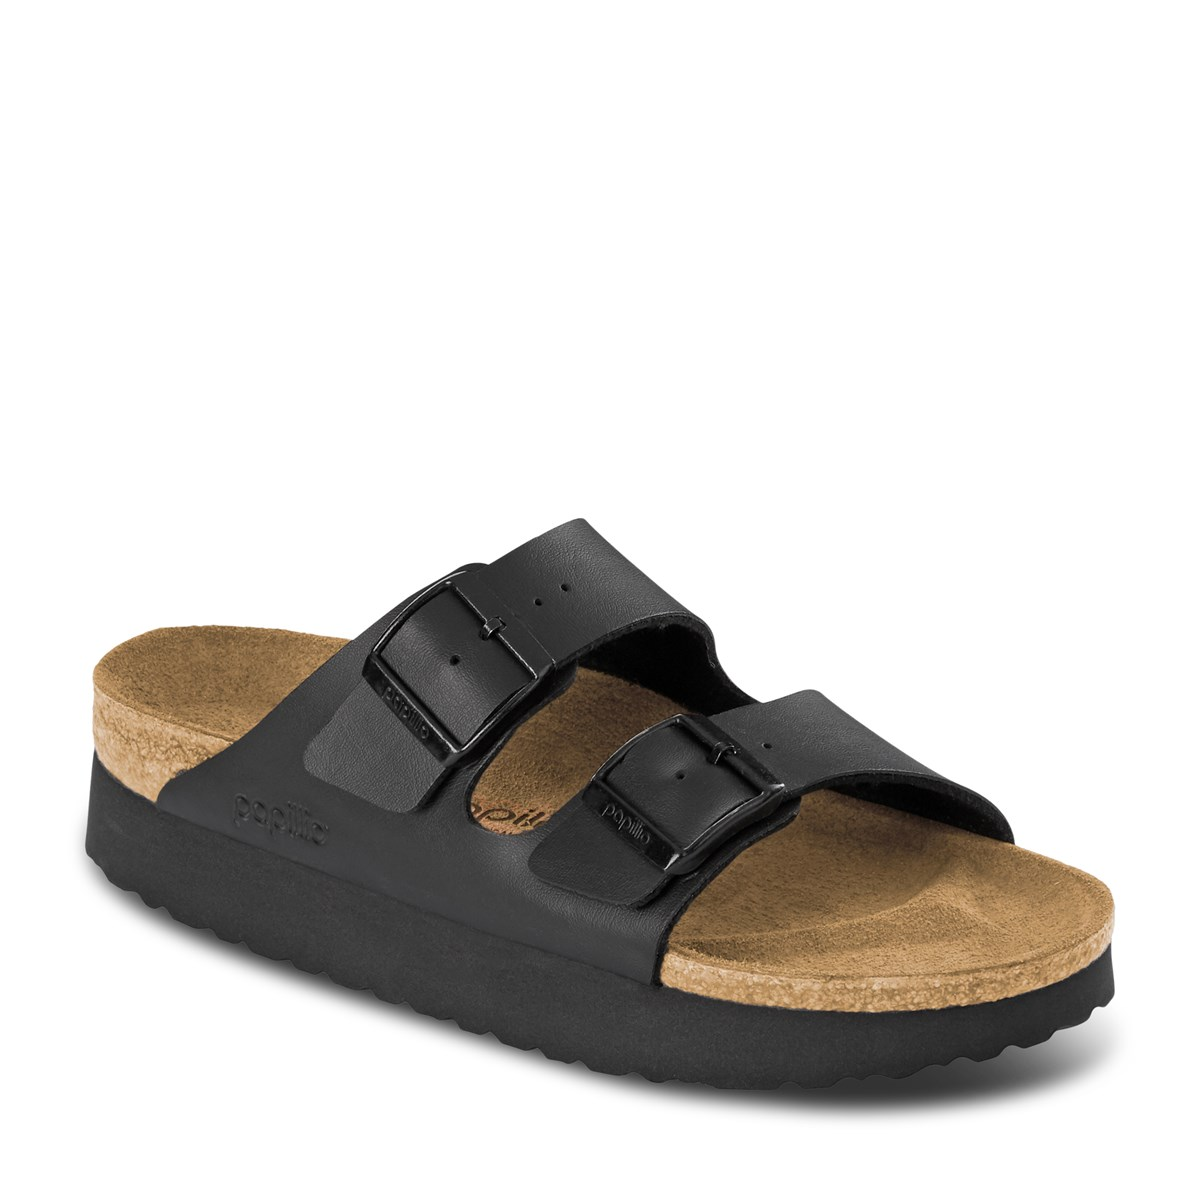 Women's Papillio Arizona Platform Sandals in Black